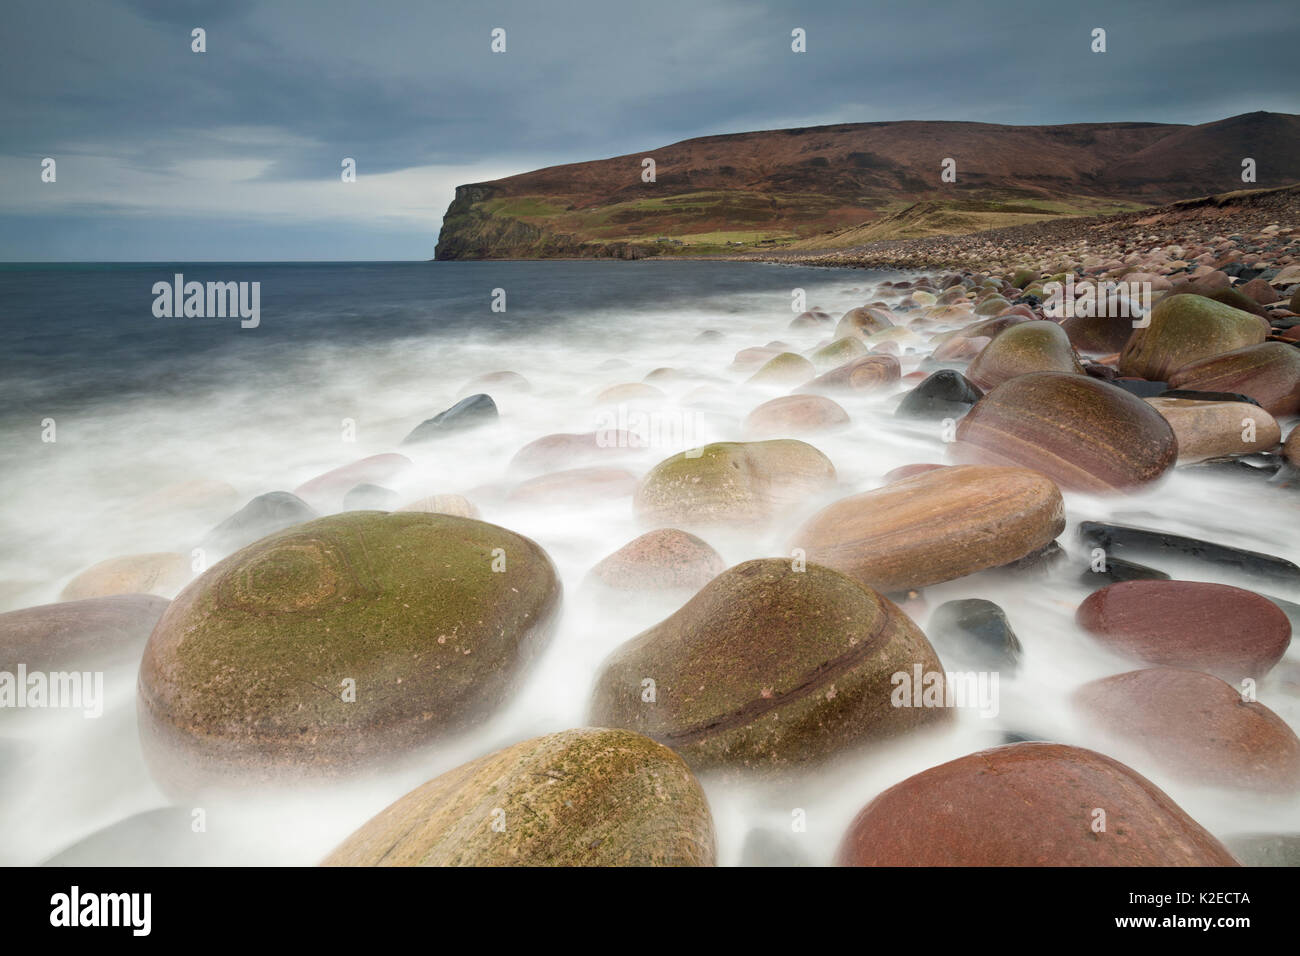 Coloured rocks, Rackwick Bay, Isle of Hoy, Orkney Isles, Scotland, UK, October 2014. - Stock Image